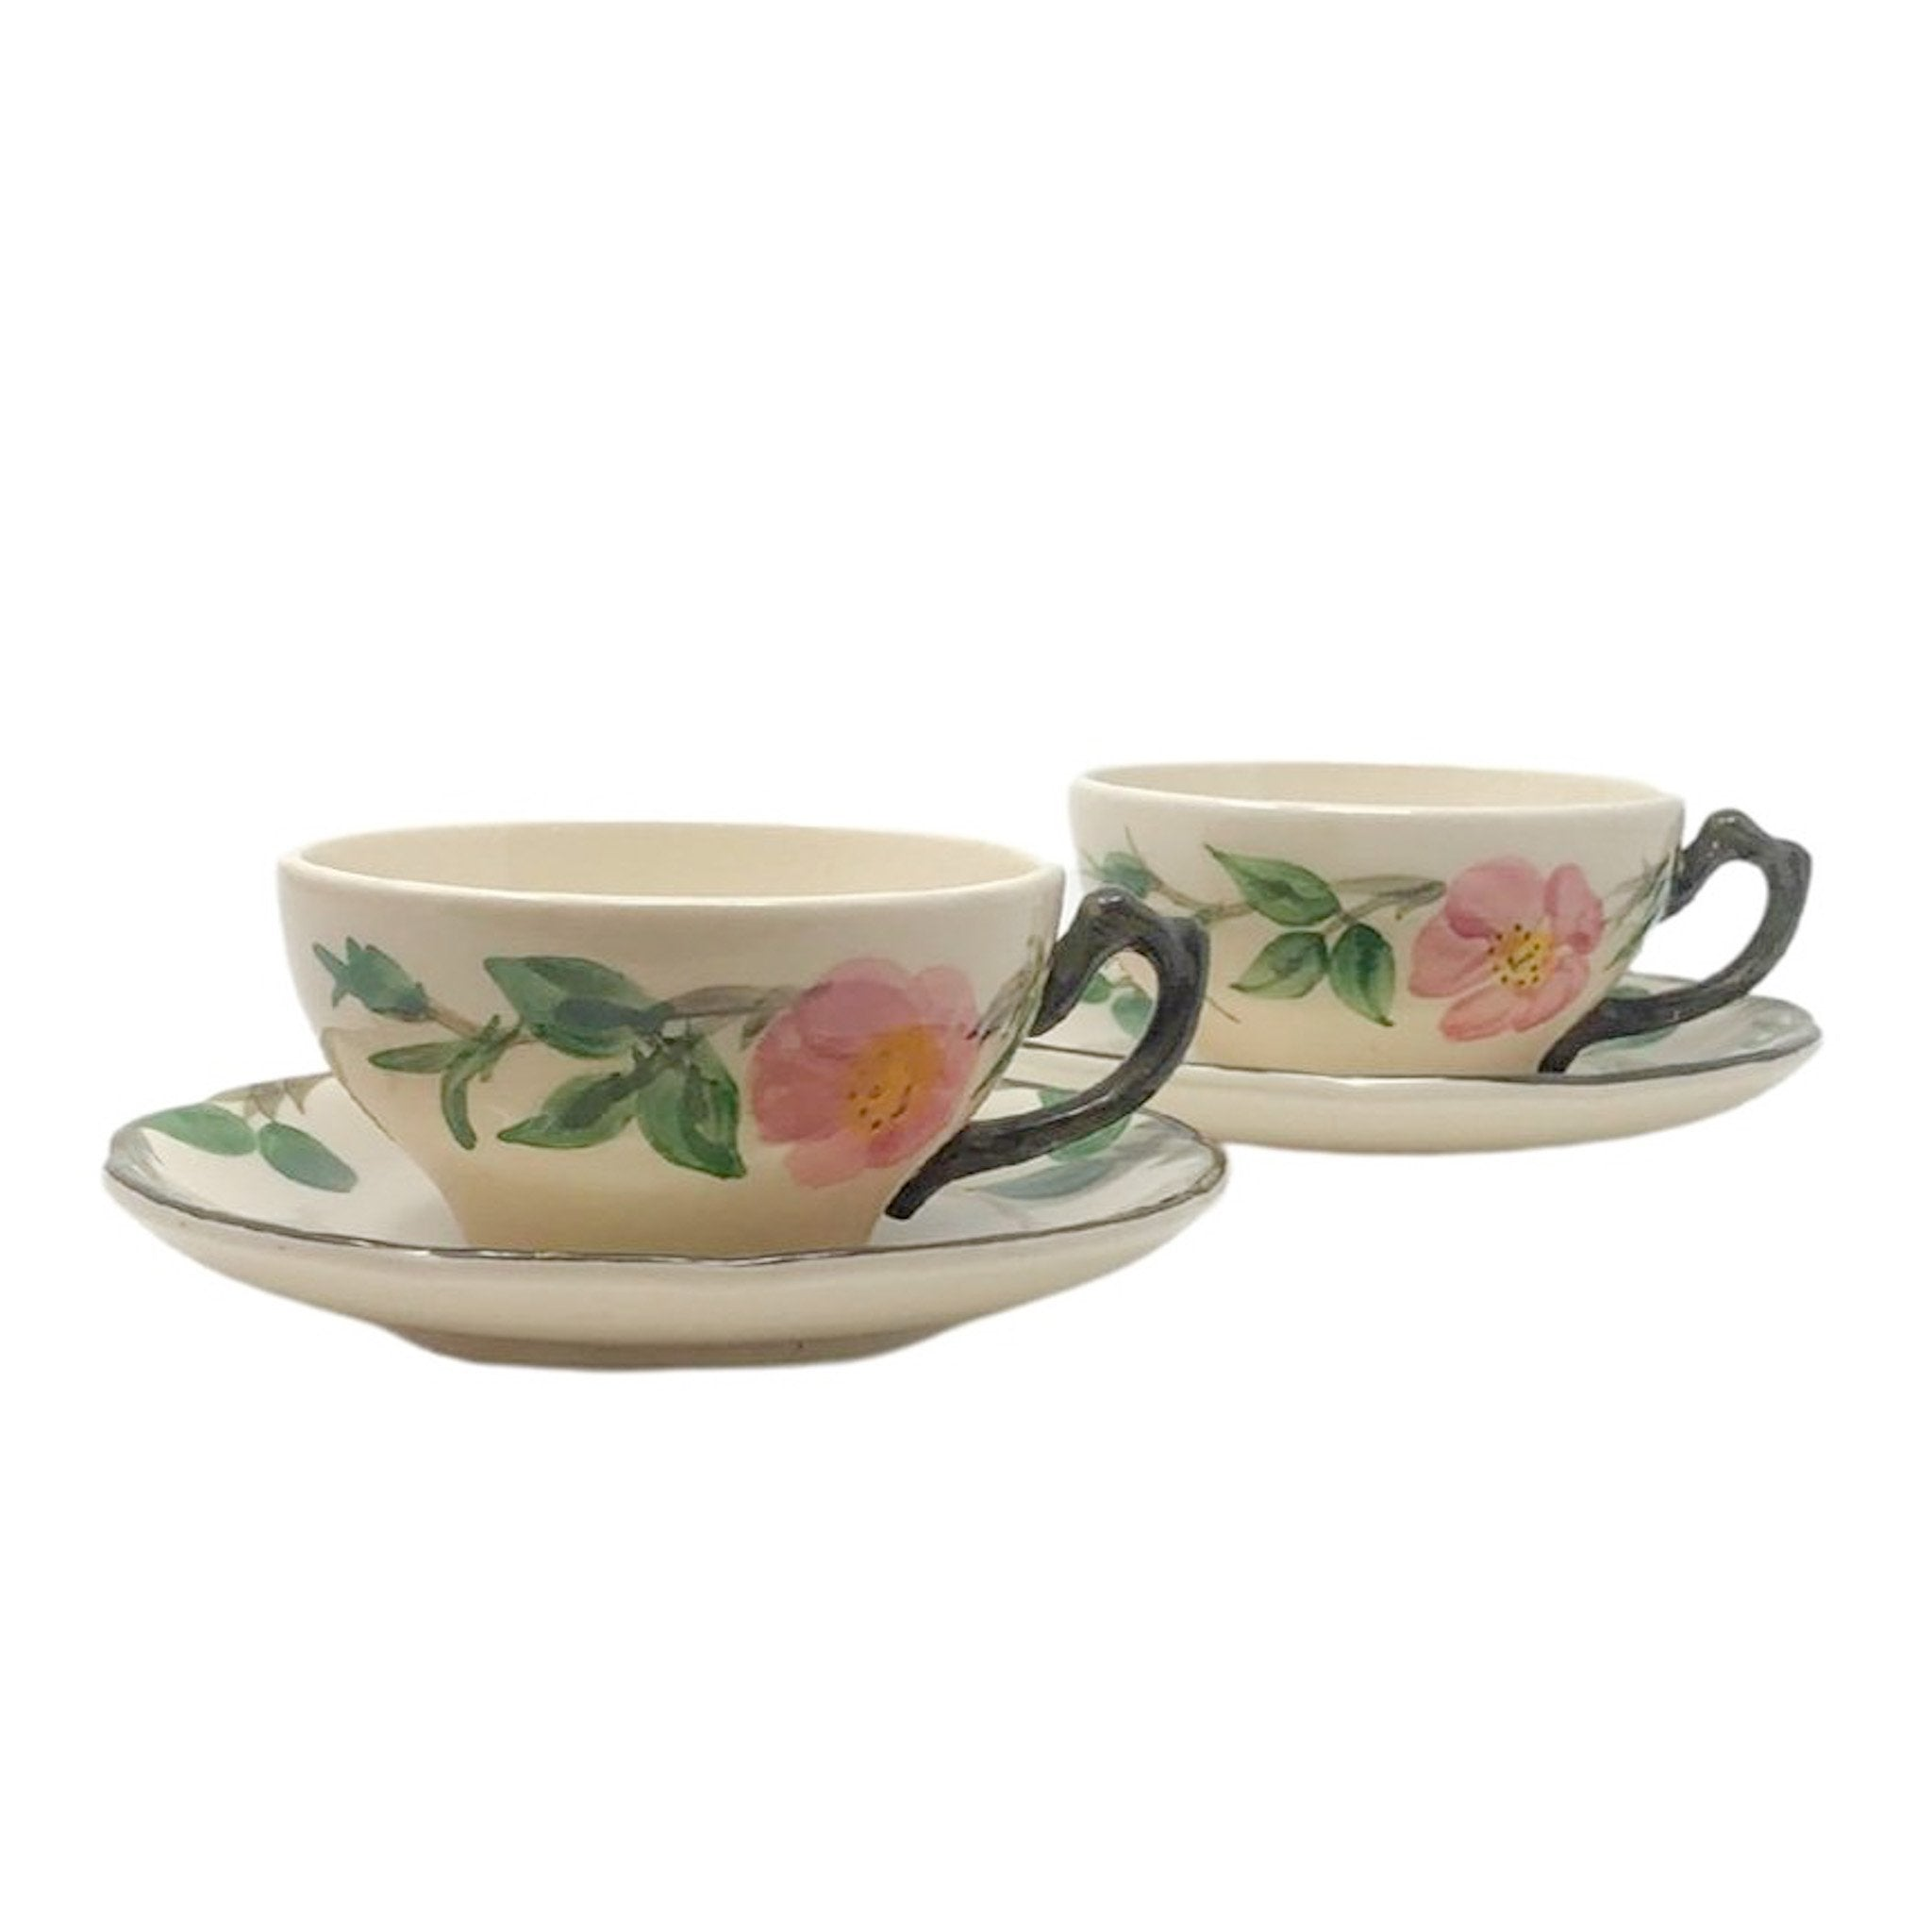 Franciscan Desert Rose | Teacup & Saucer Set (of 2) | Franciscan - The Brooklyn Teacup